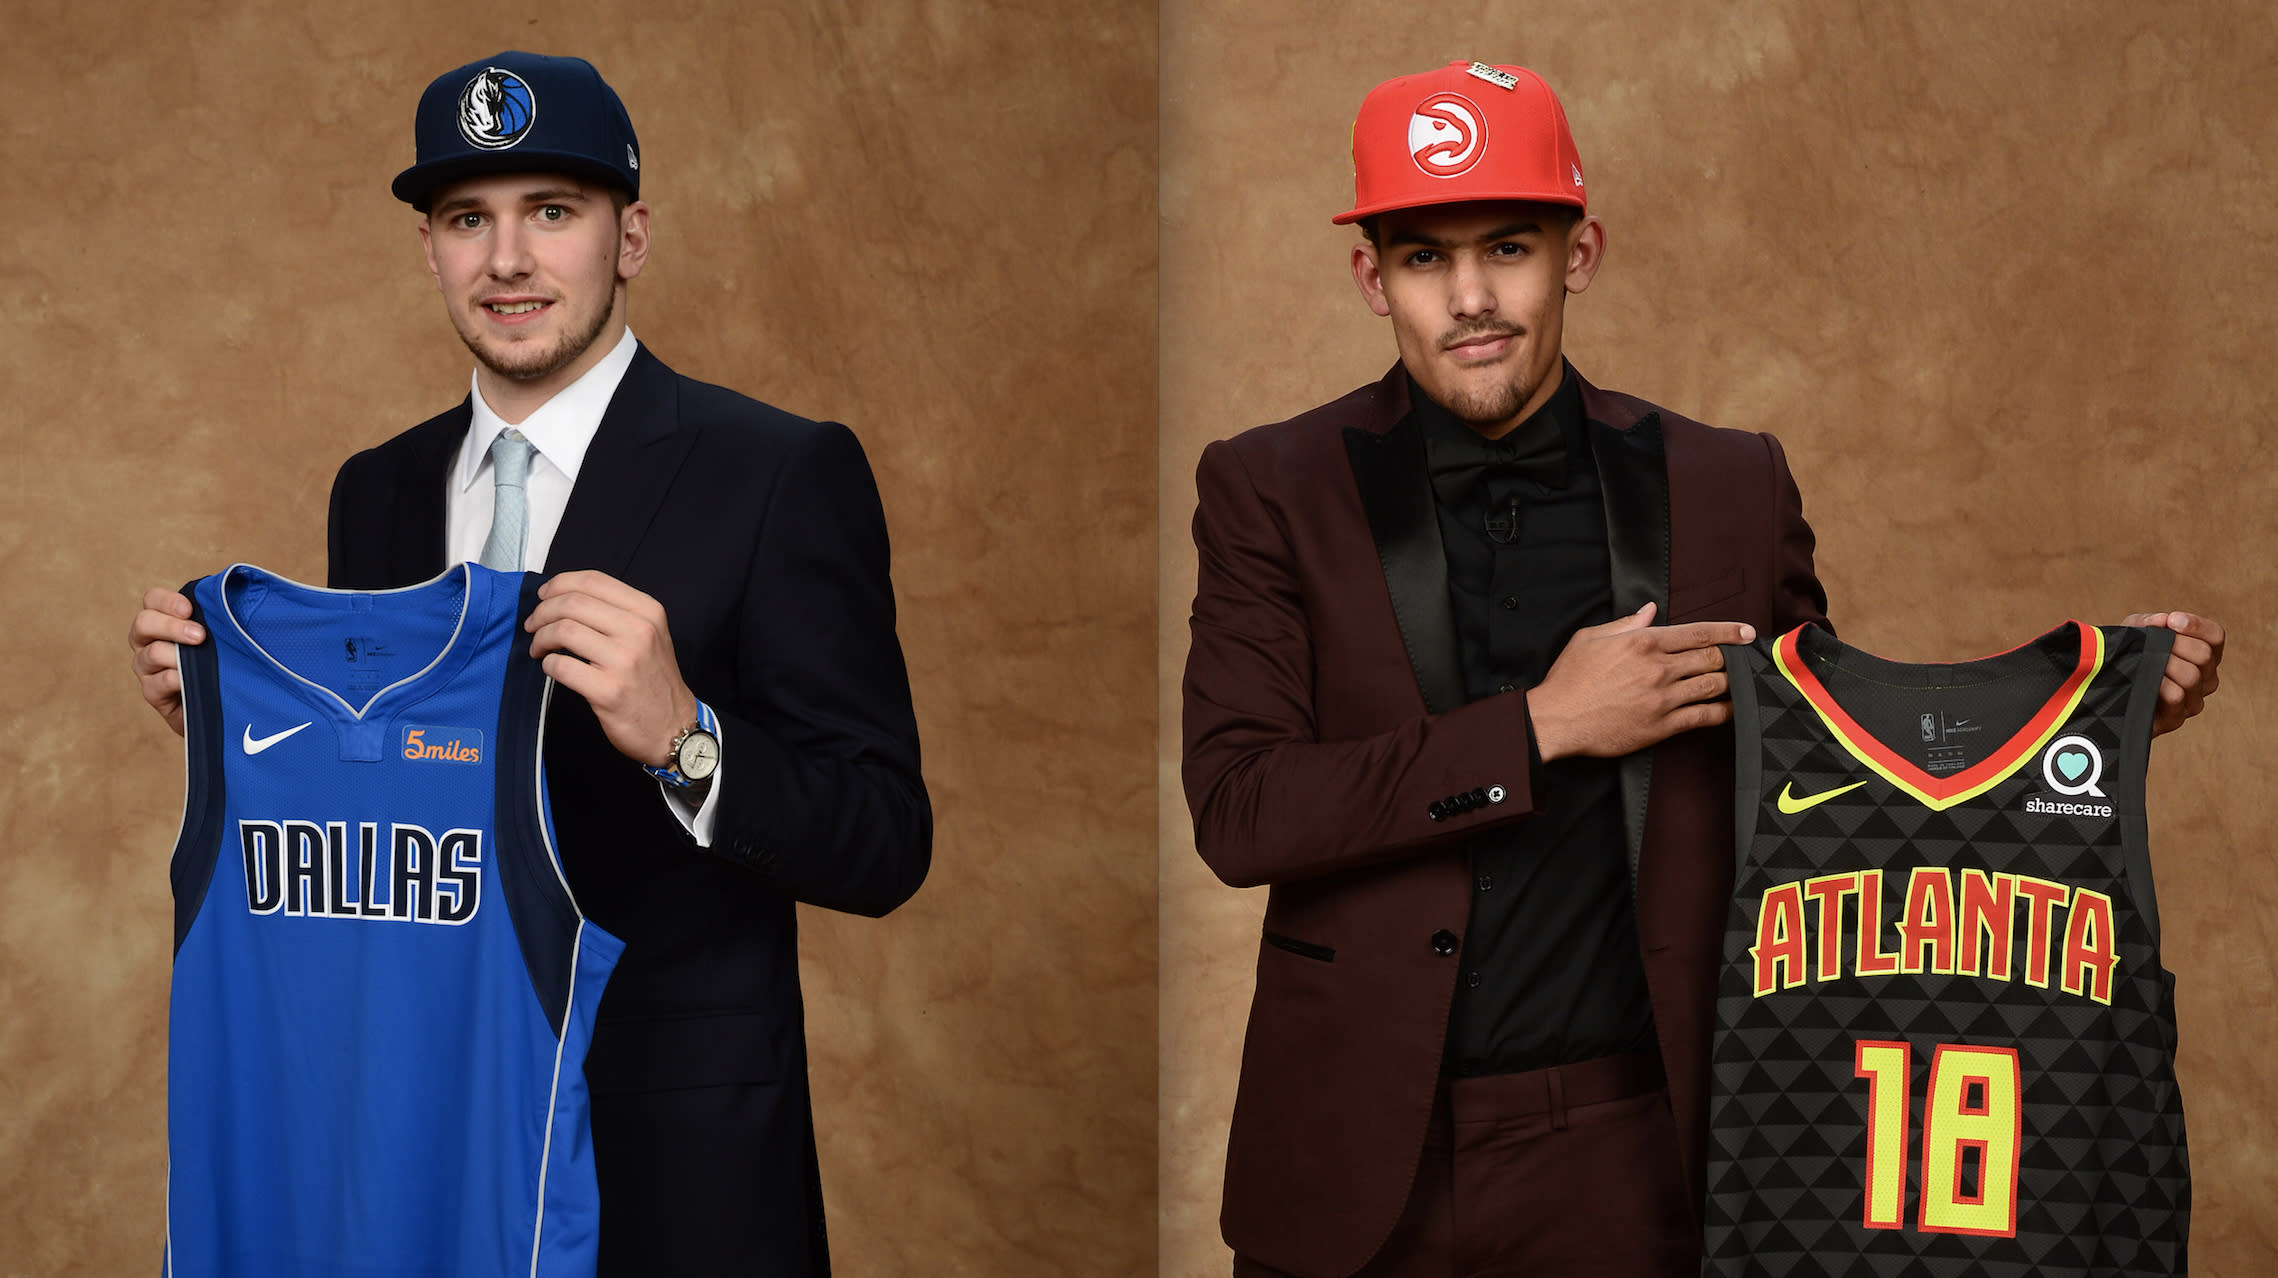 designer fashion c694e 2f740 NBA draft: Luka Doncic, Trae Young now linked forever